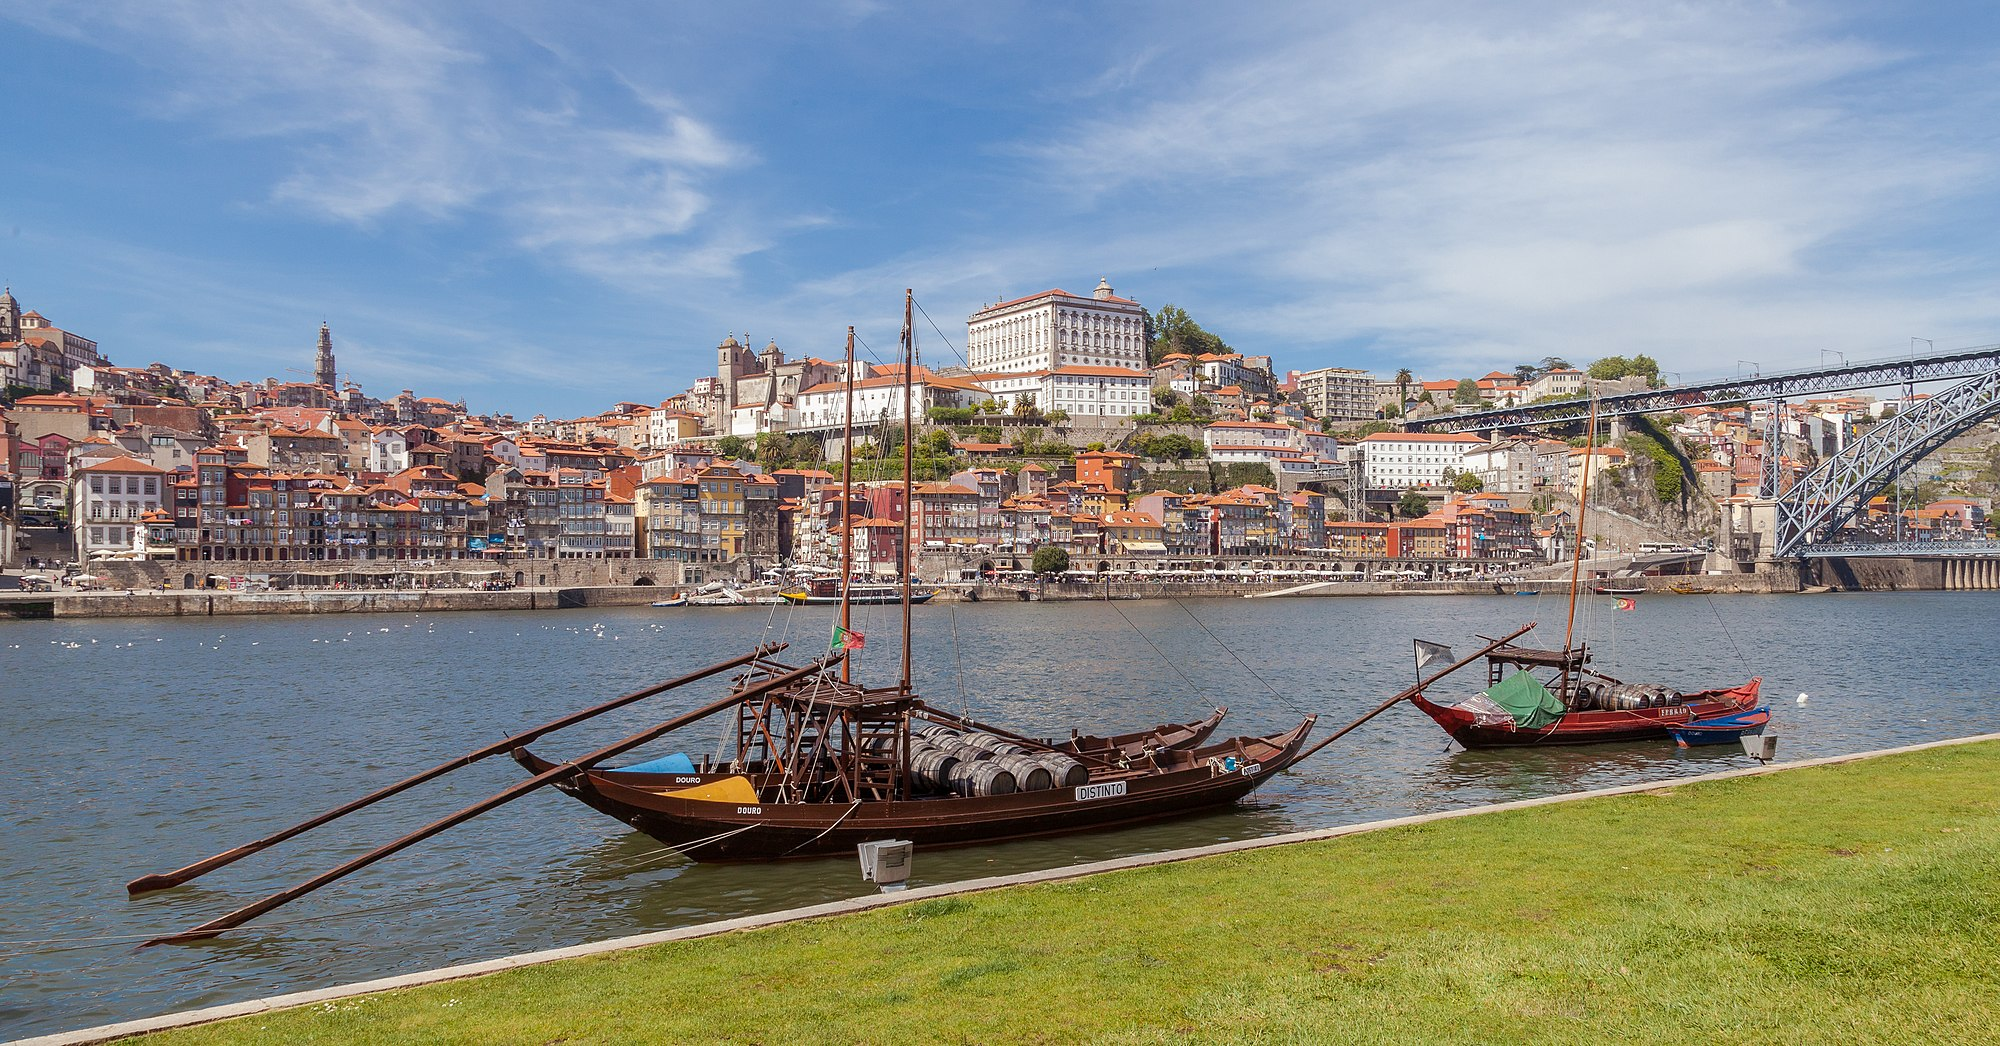 Rabelos in the Douro River with the city of Porto in the background, Portugal. Rabelos are traditional Portuguese wooden cargo boats used for centuries to transport people and goods from along the Douro River. Wine was brought in rabelos from the interior of the country to Porto, home to many wine cellars.